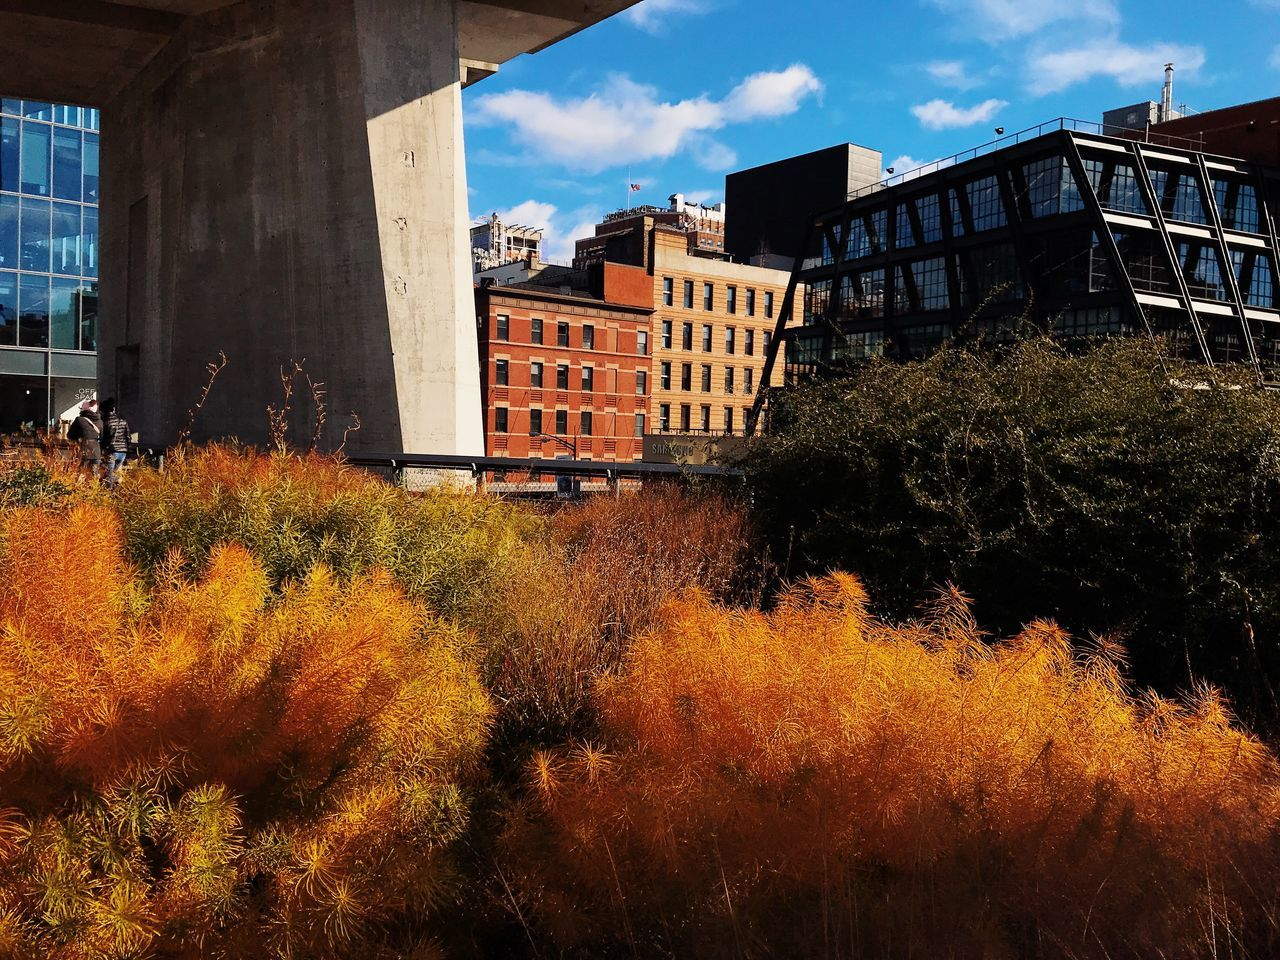 architecture, built structure, building exterior, autumn, tree, change, sky, outdoors, no people, nature, leaf, day, residential, plant, growth, beauty in nature, city